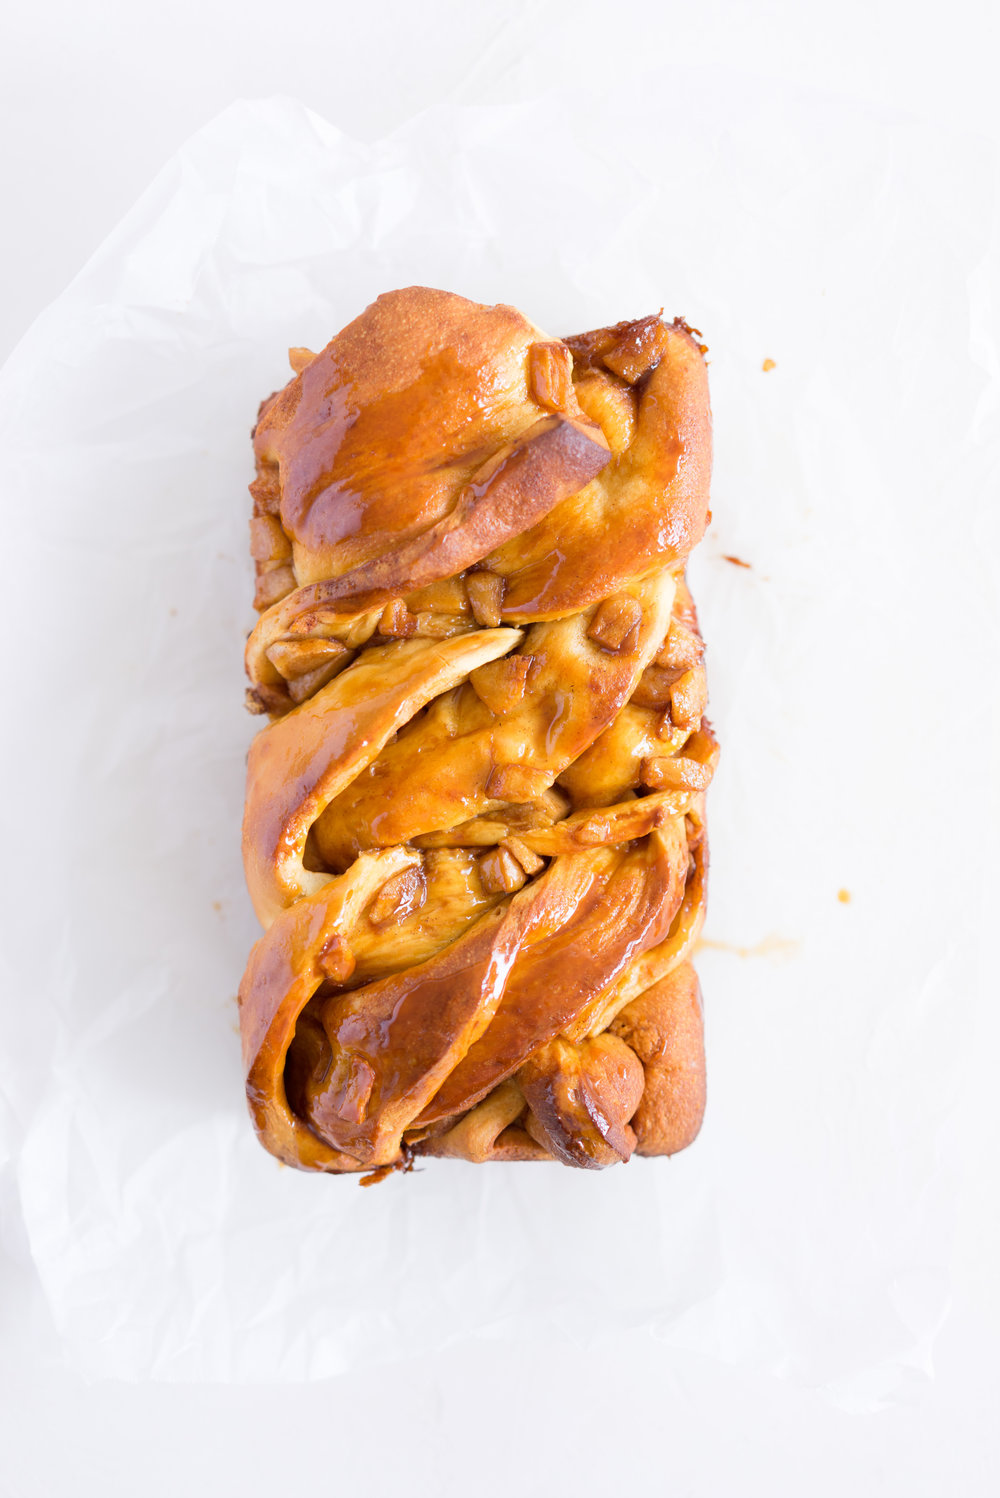 Salted Caramel and Apple Babka - pillowy brioche, loaded up with salted caramel and apple. The perfect fall treat.